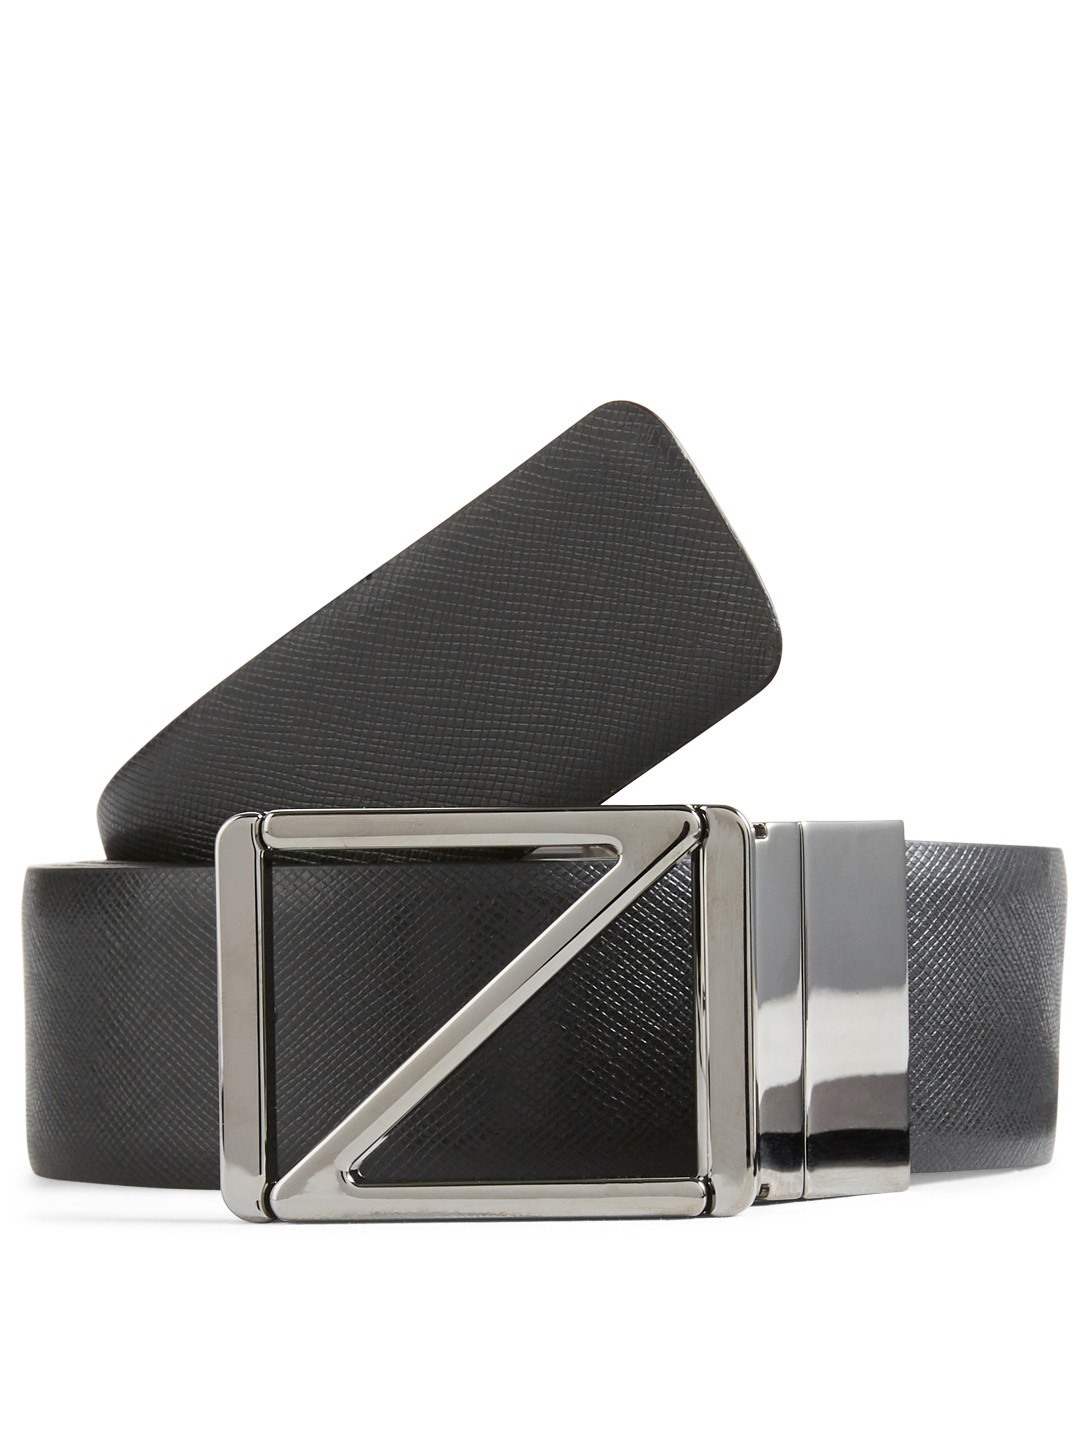 ERMENEGILDO ZEGNA Reversible Leather Logo Belt Men's Black